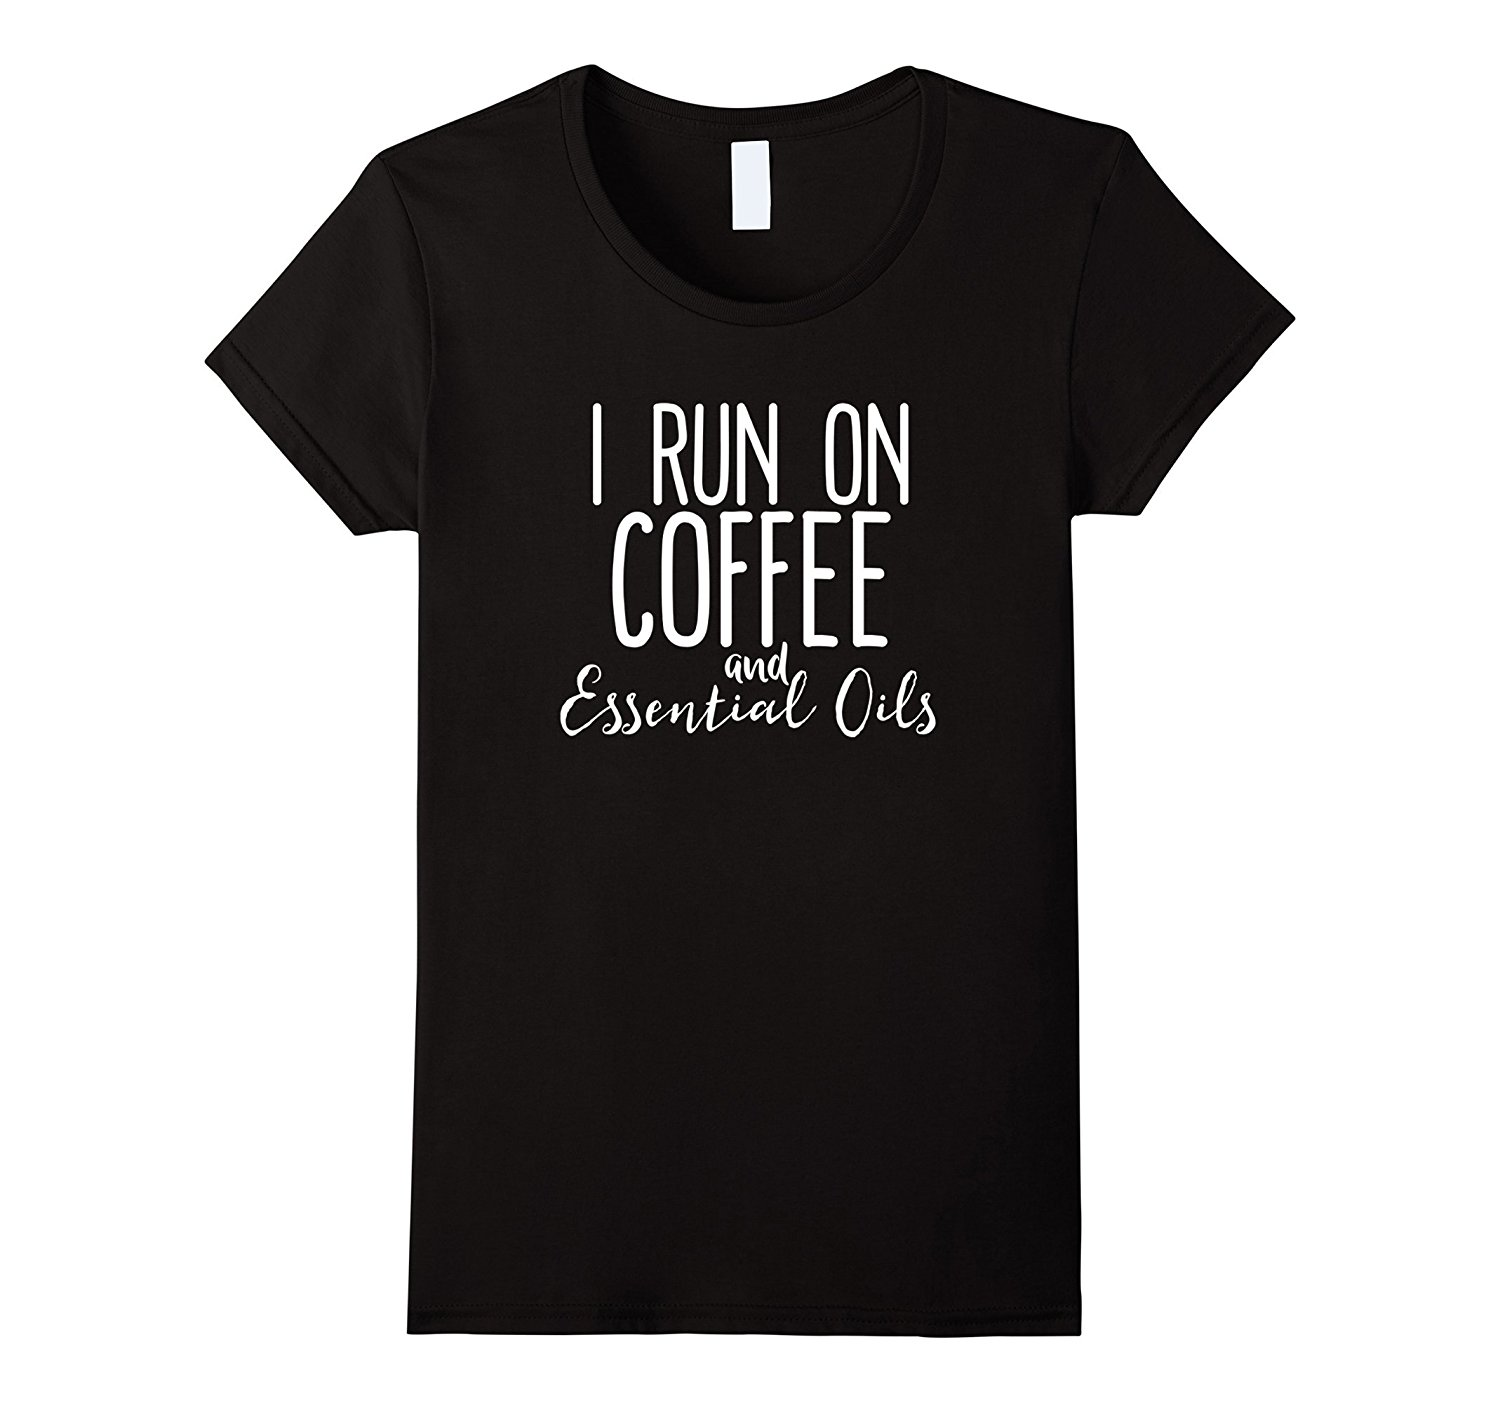 3123d319 I Runner on Coffee and Essential Oils T Shirt Funny Saying Work for Women  Unicorn Brand Clothing Basic Models Game Shirt